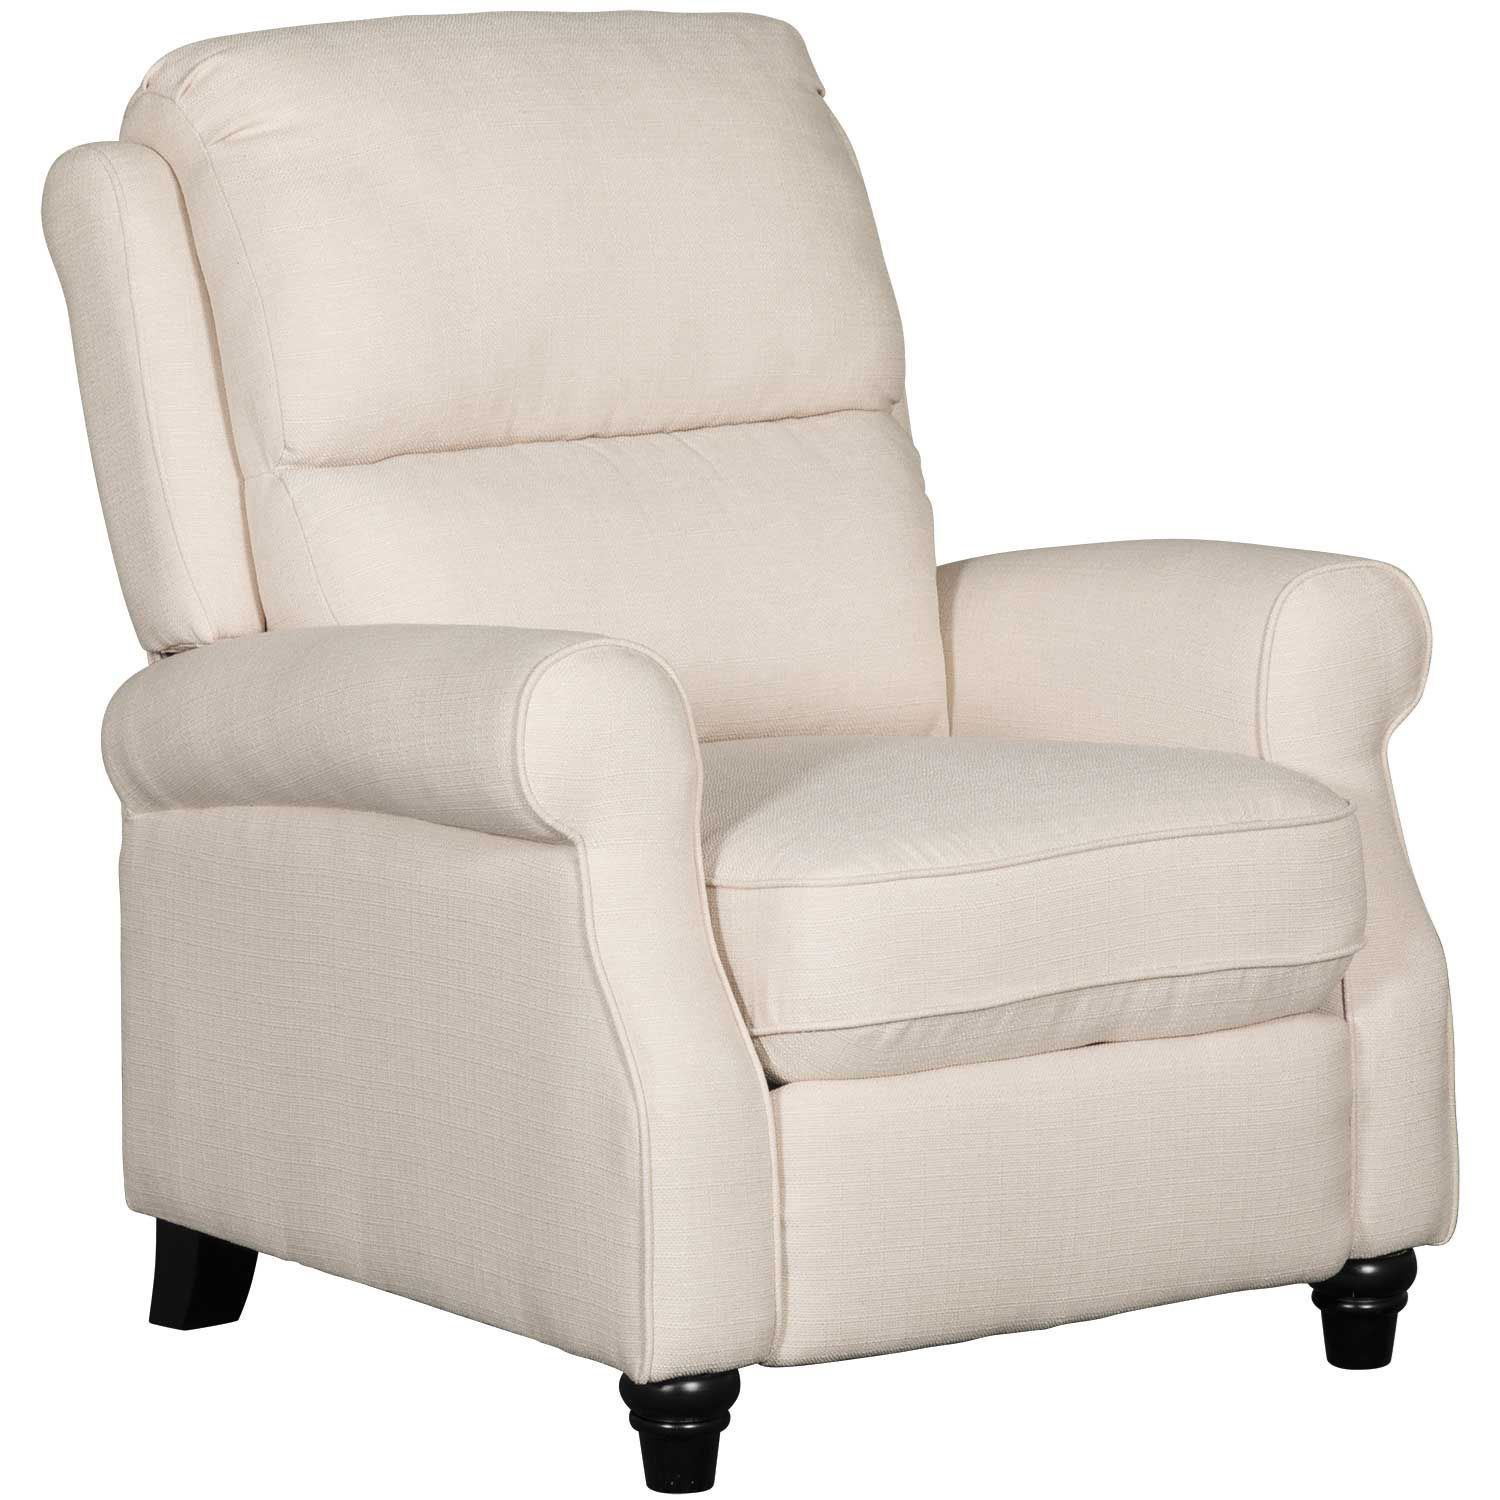 Recliner Chairs Best Prices Available Afw Recliner